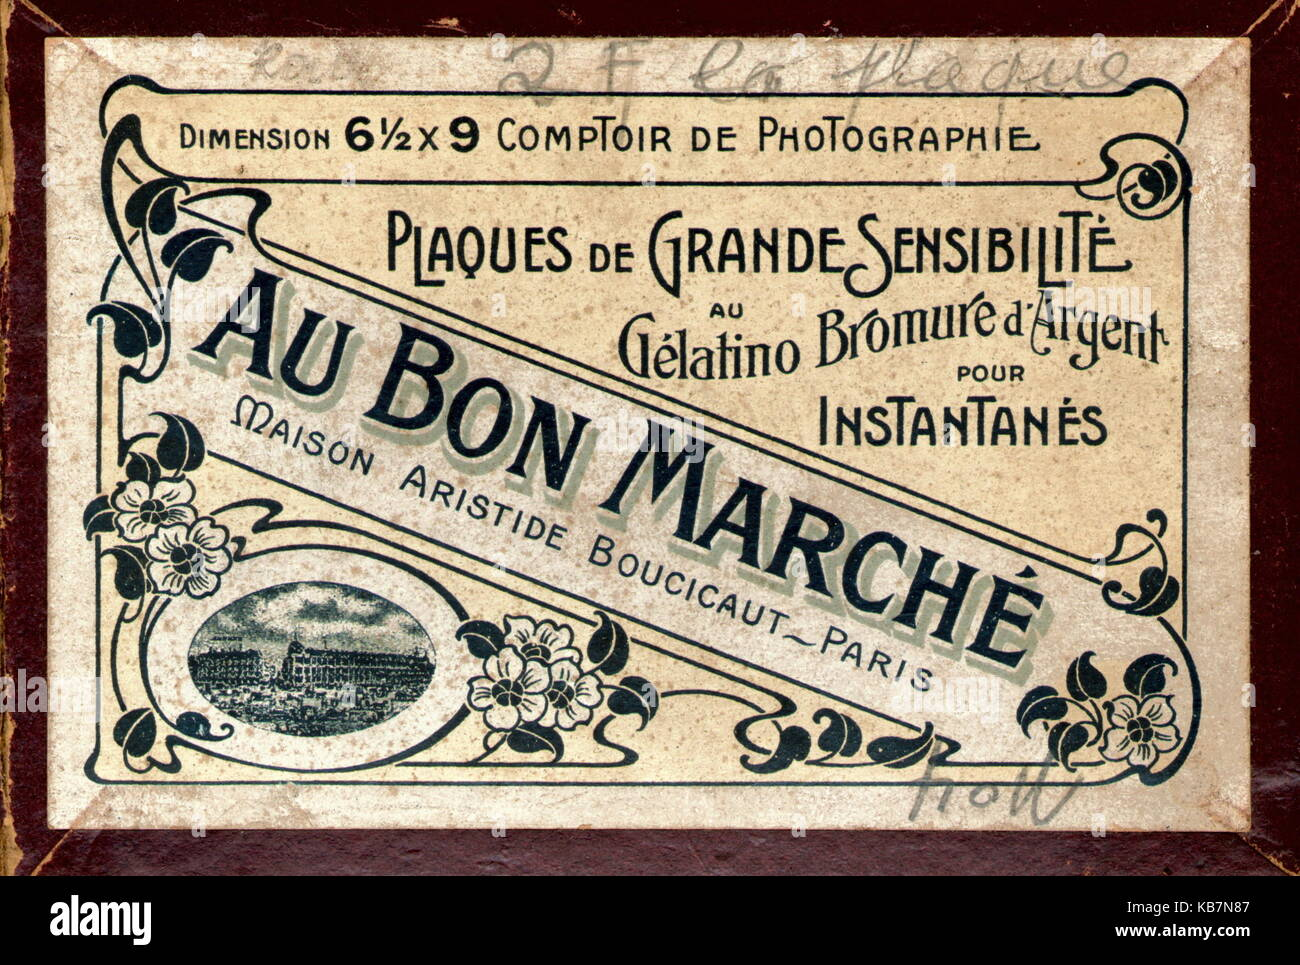 AJAXNETPHOTO. 1997. SOUTHAMPTON, ENGLAND. - BOX LID OF OLD 19TH EARLY 20TH CENTURY AU BON MARCHE PHOTOGRAPHIC DRY - Stock Image